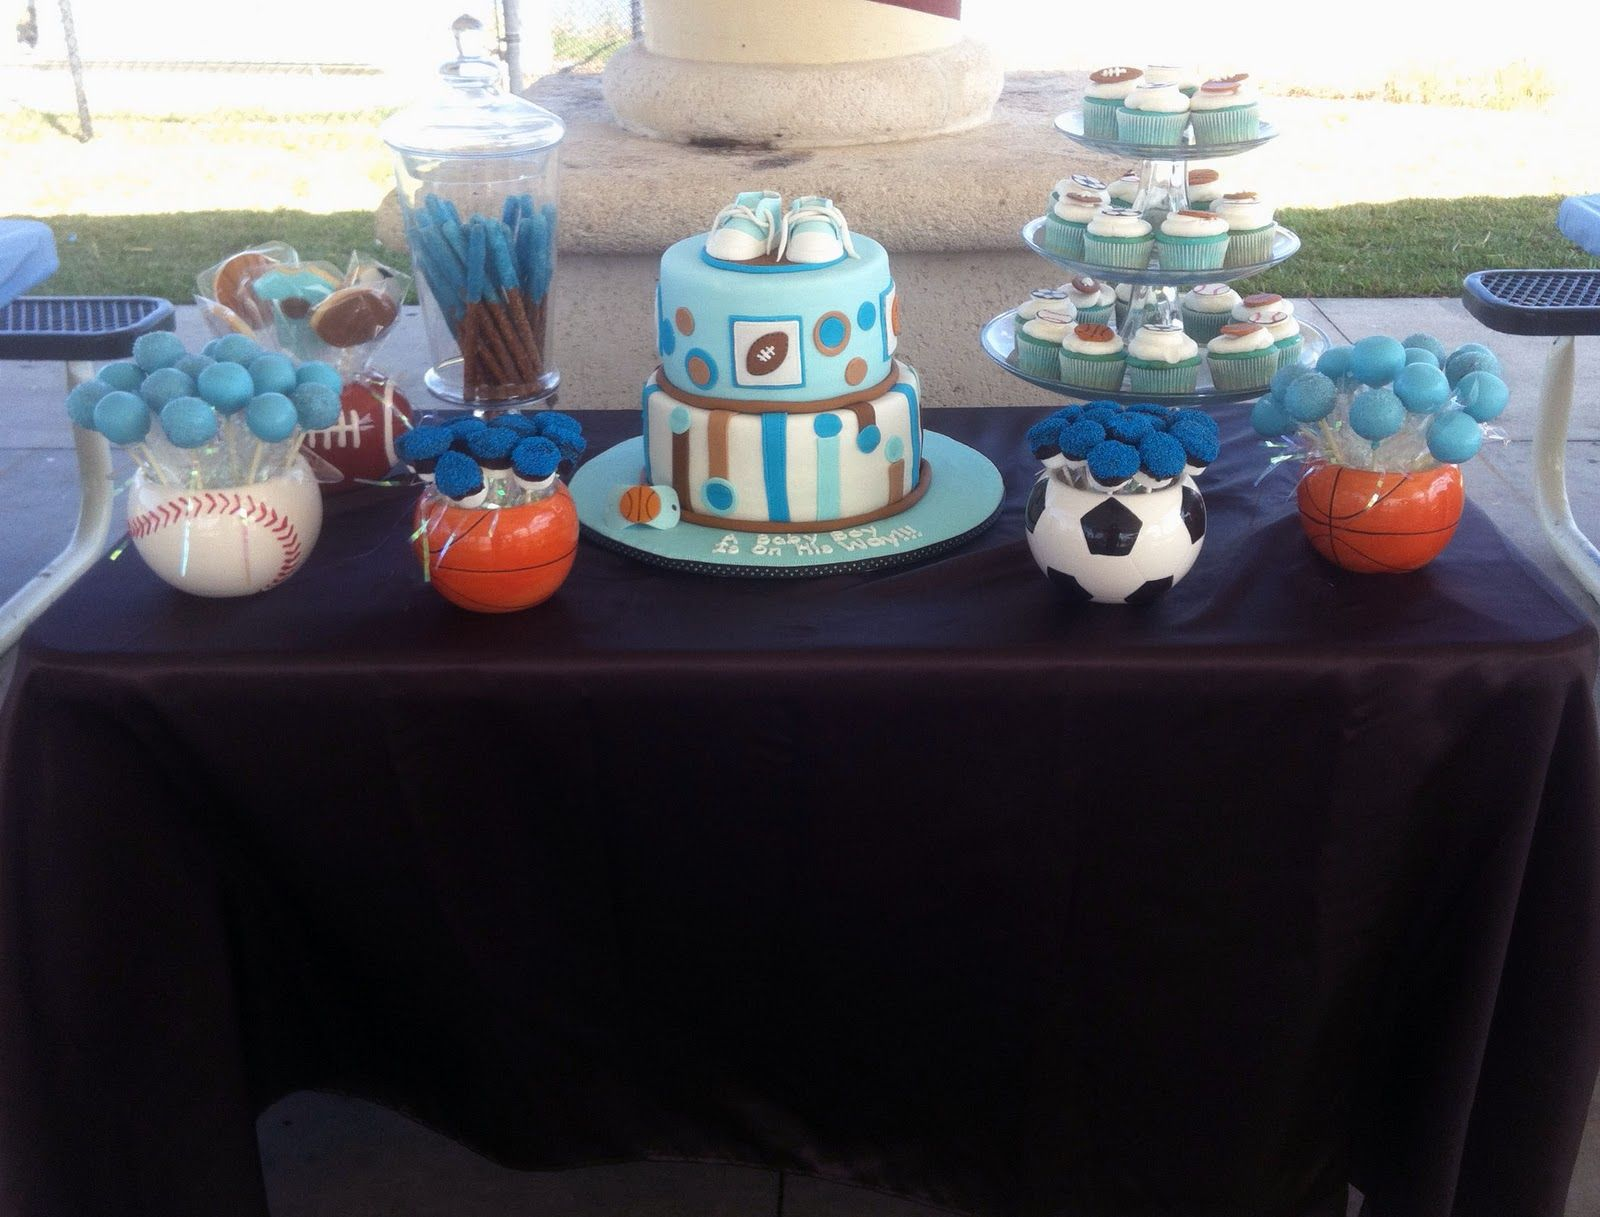 Leelees Cake Abilities All Star Sports Theme Cake And